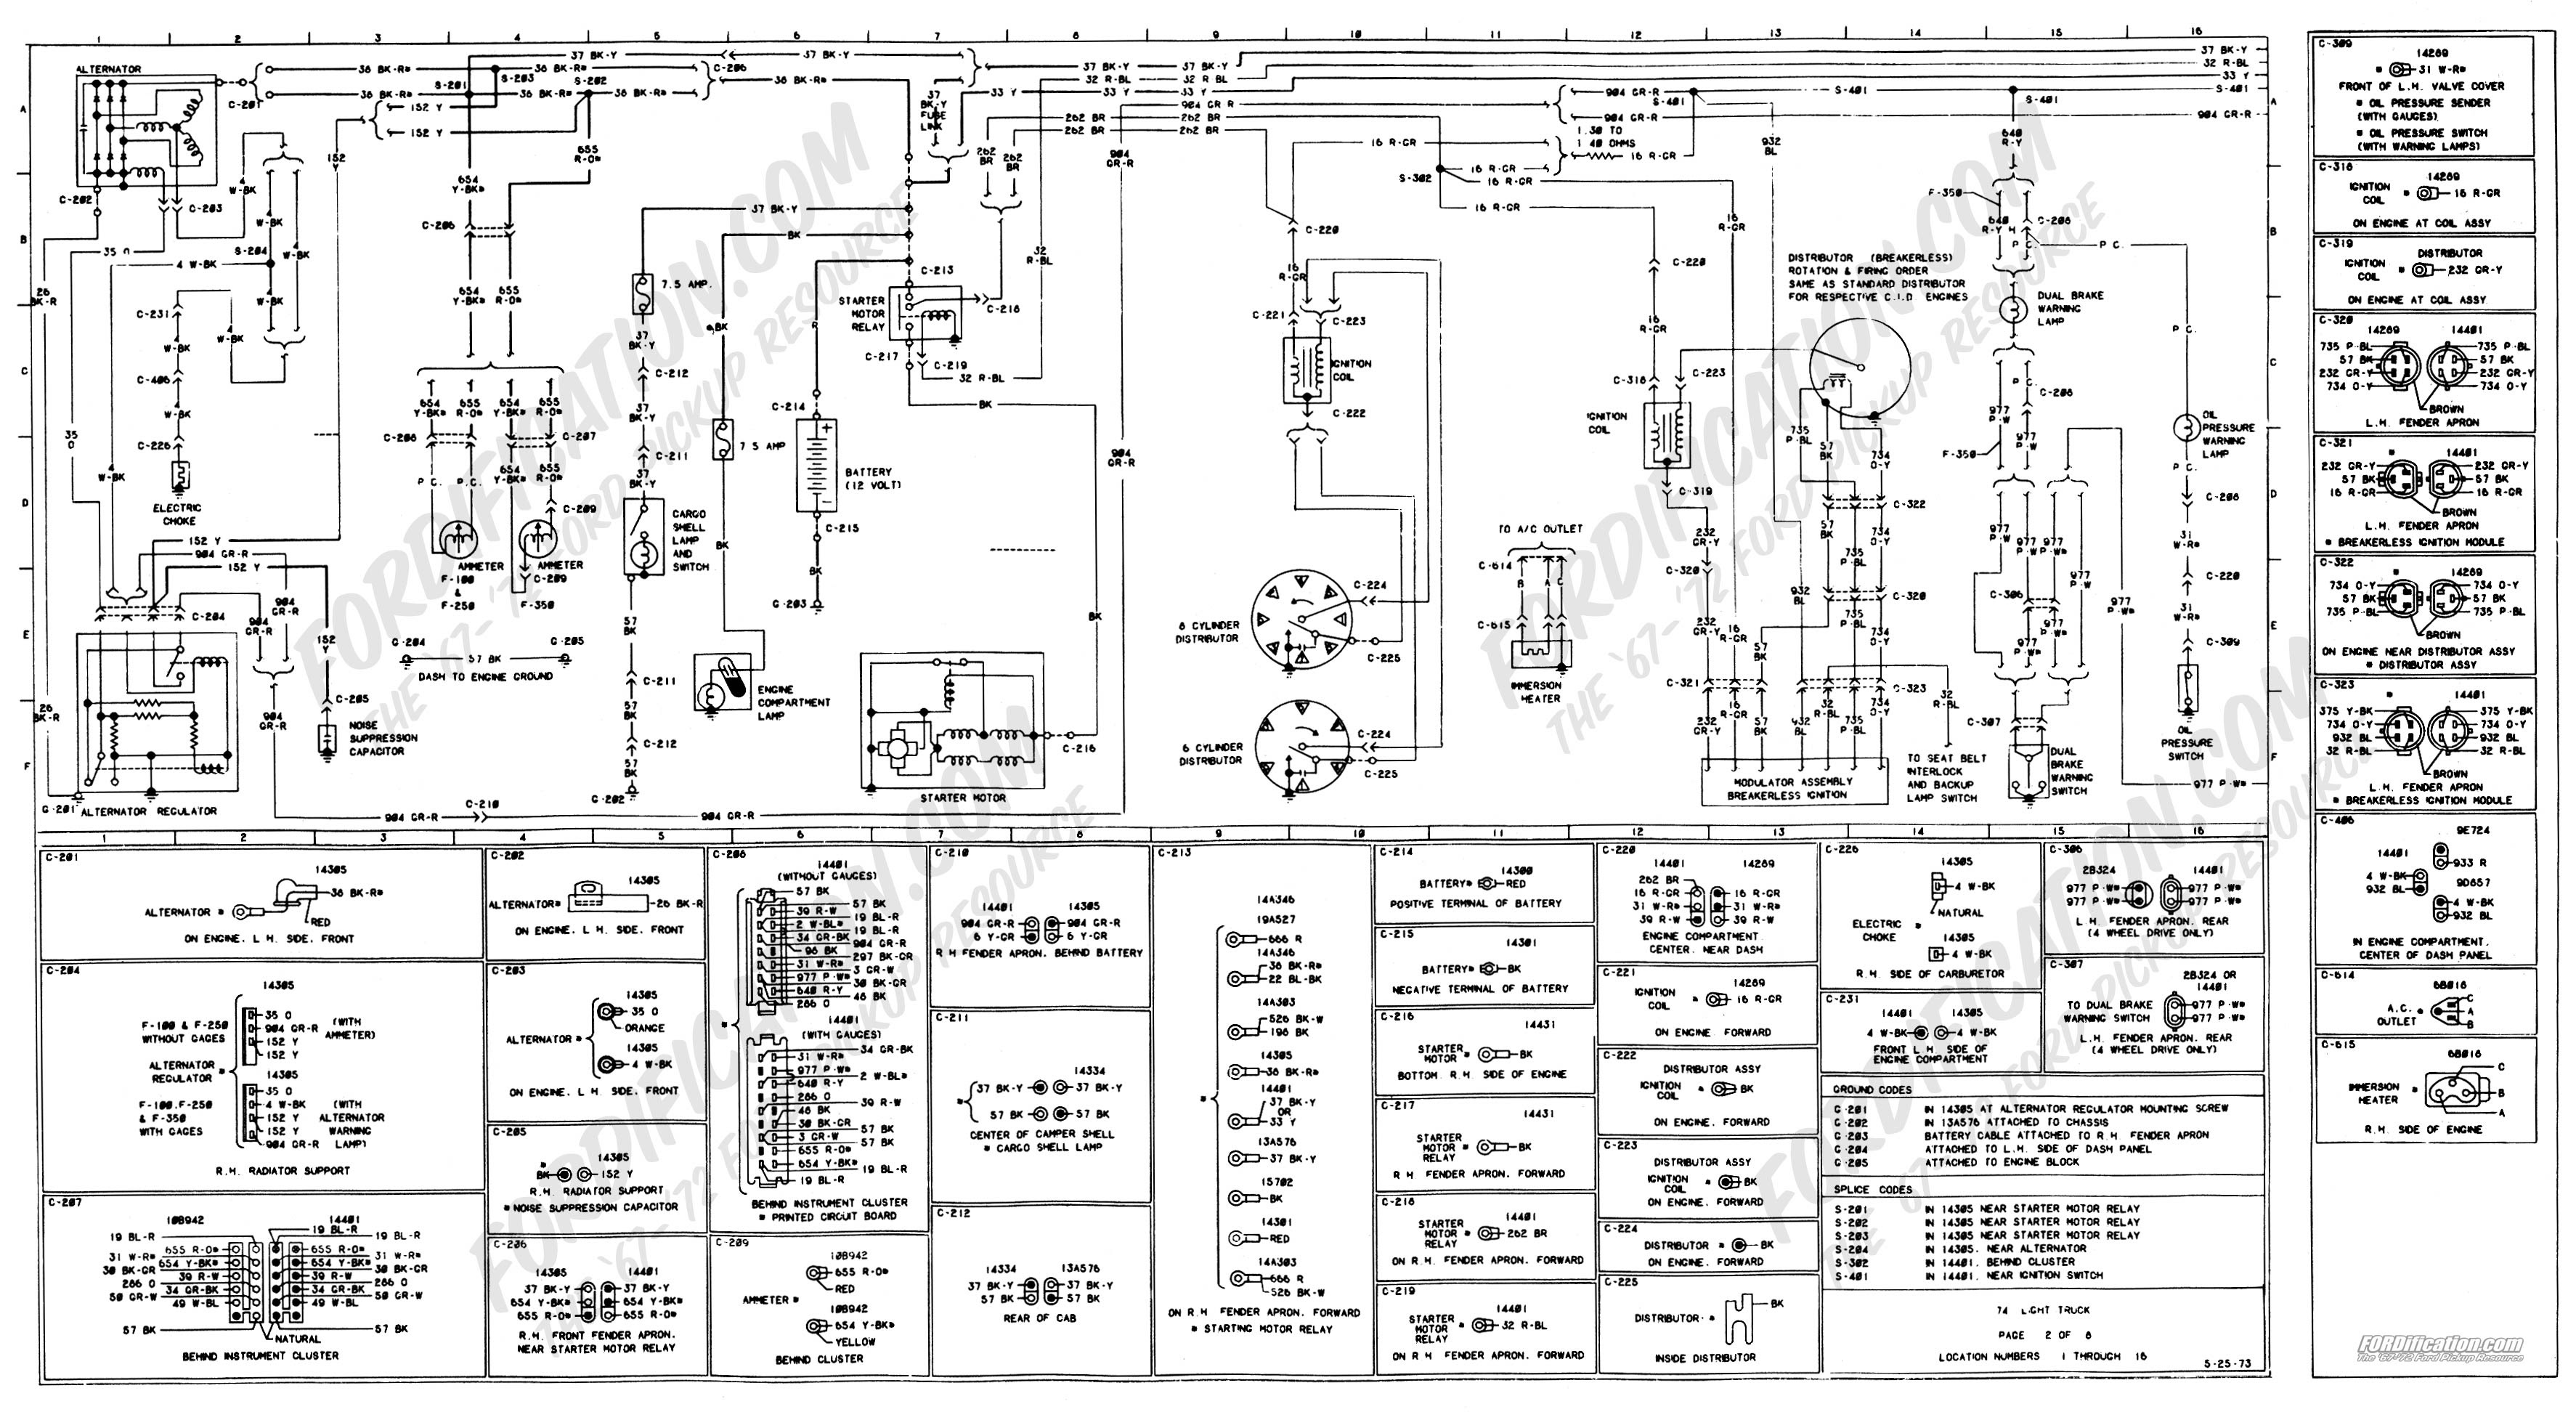 Wiring Diagram For 2008 Ford Econoline E350